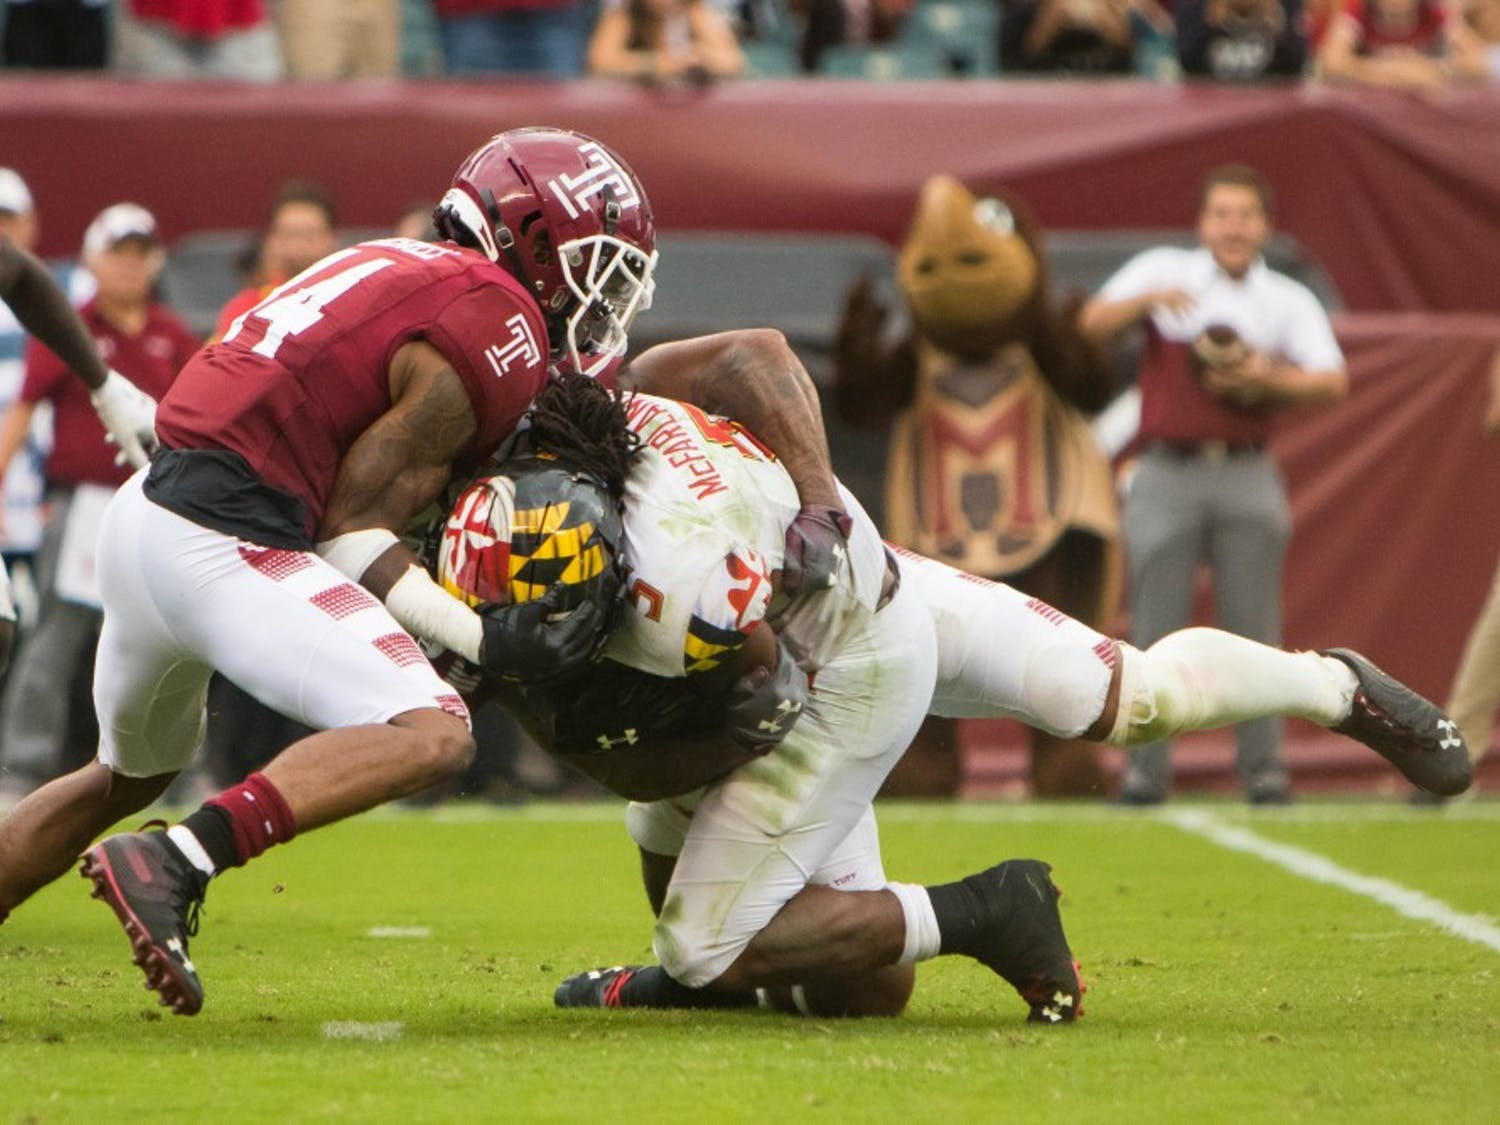 Redshirt-sophomore cornerback Christian Braswell (left) assists senior linebacker Shaun Bradley in a tackle during the fourth quarter in the Owls' game against Maryland at Lincoln Financial Field on Sept. 14, 2019.